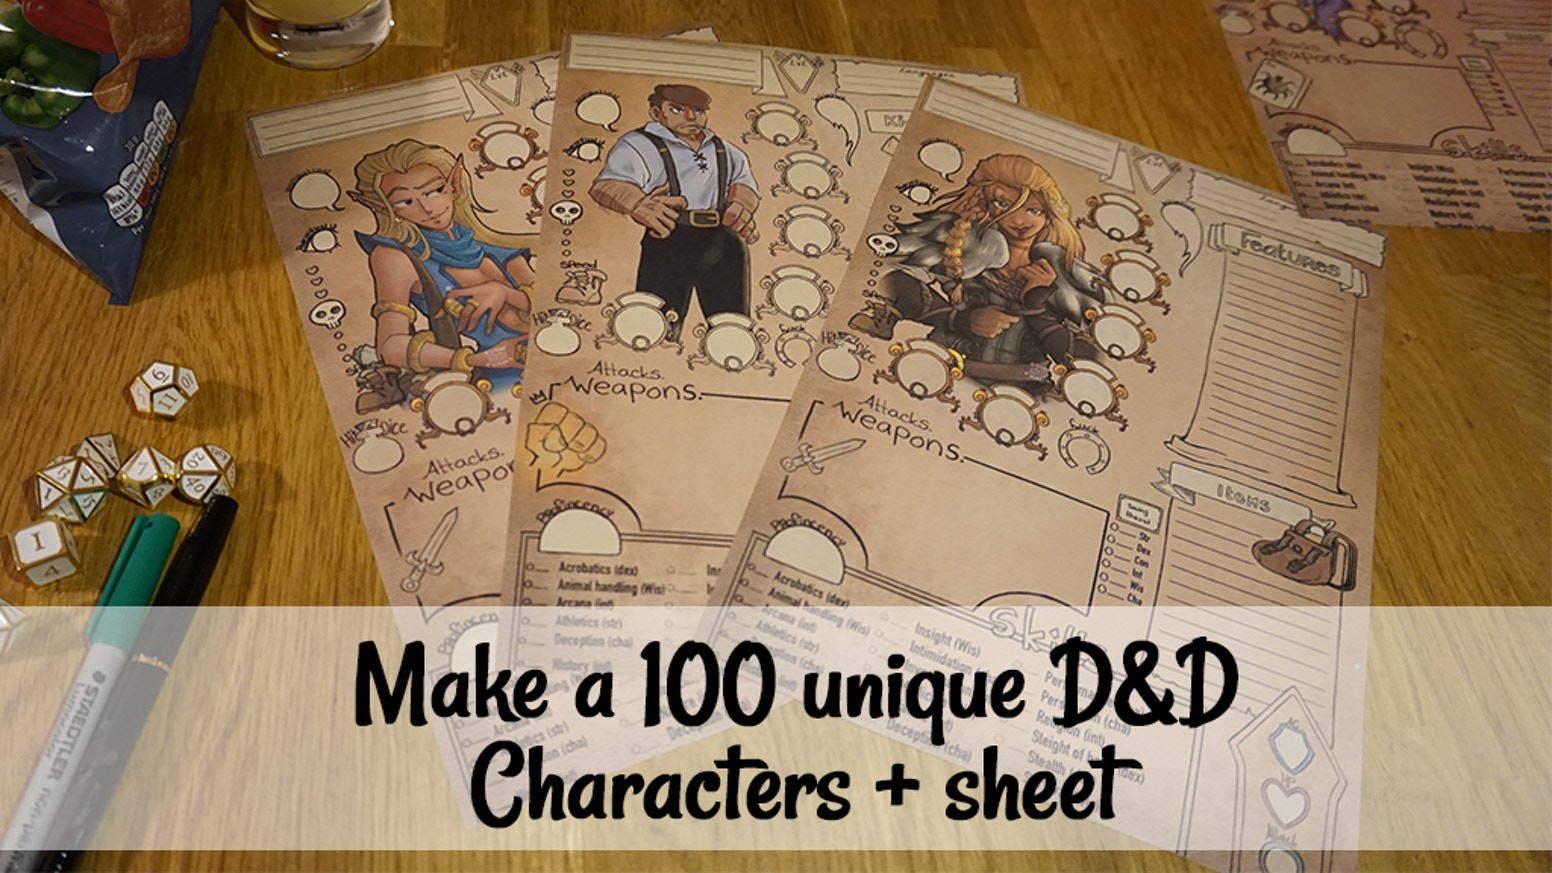 I am making 100 Customized D&D characters+sheets.